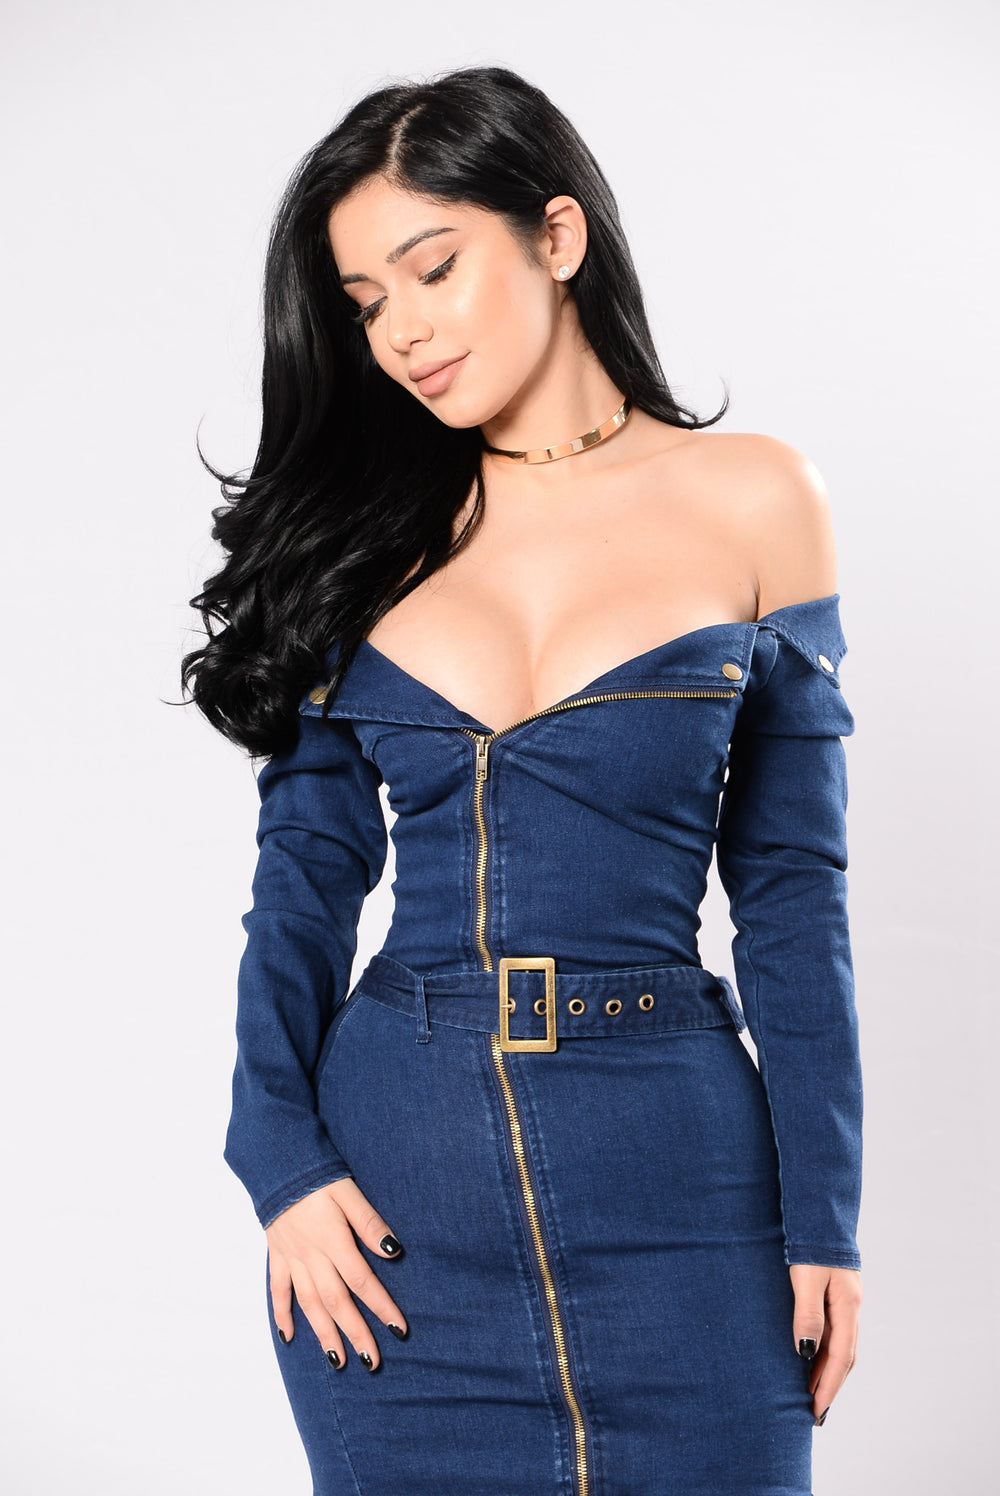 Casually Caught Up Denim Dress - Medium Wash